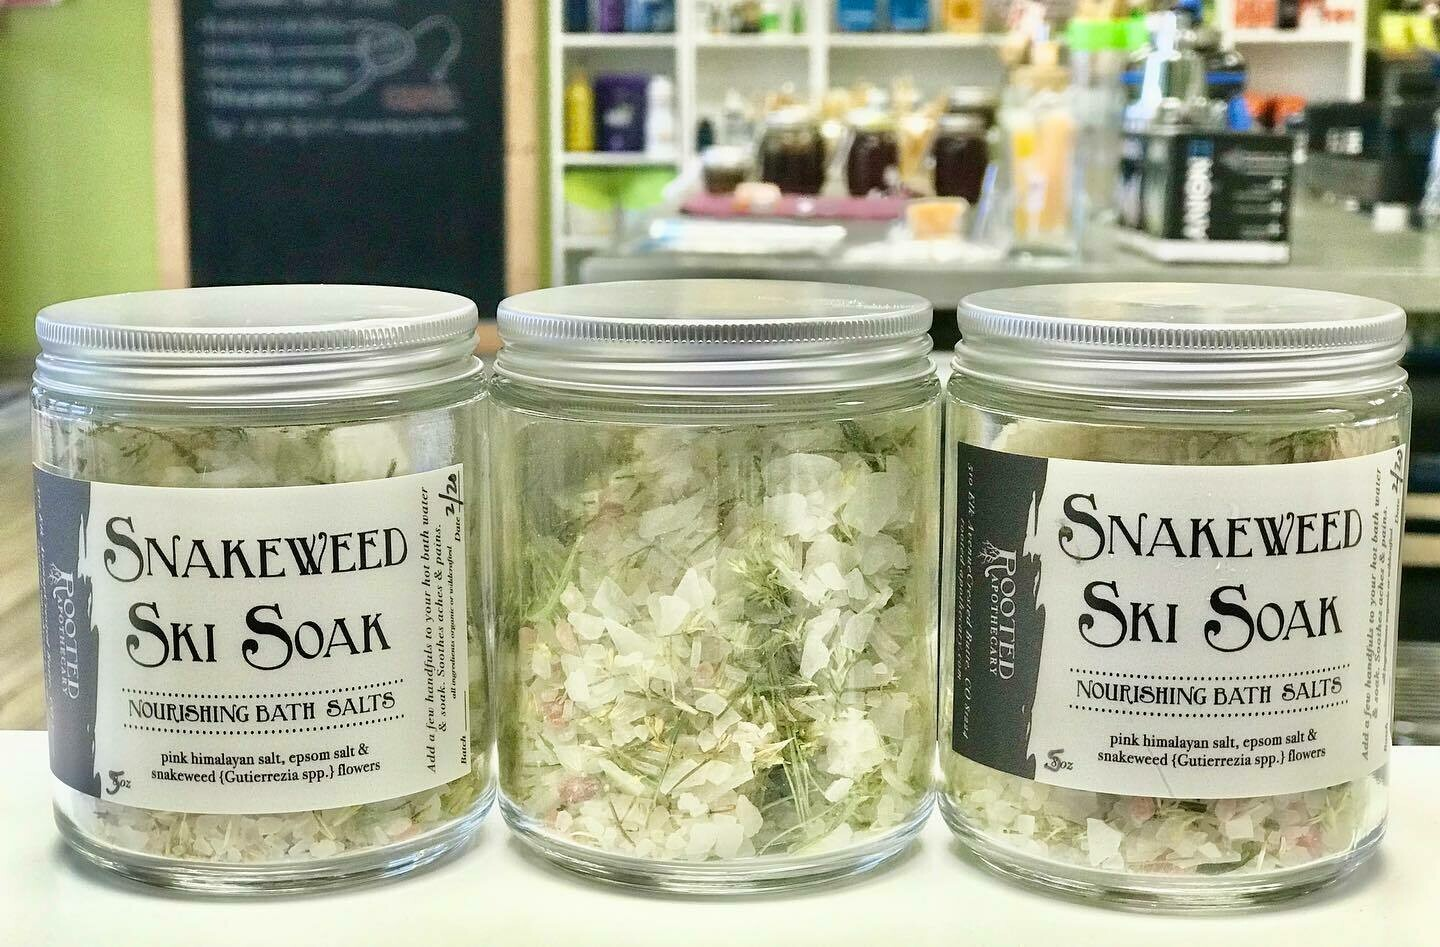 Rooted Apothecary Snakeweed Ski Soak